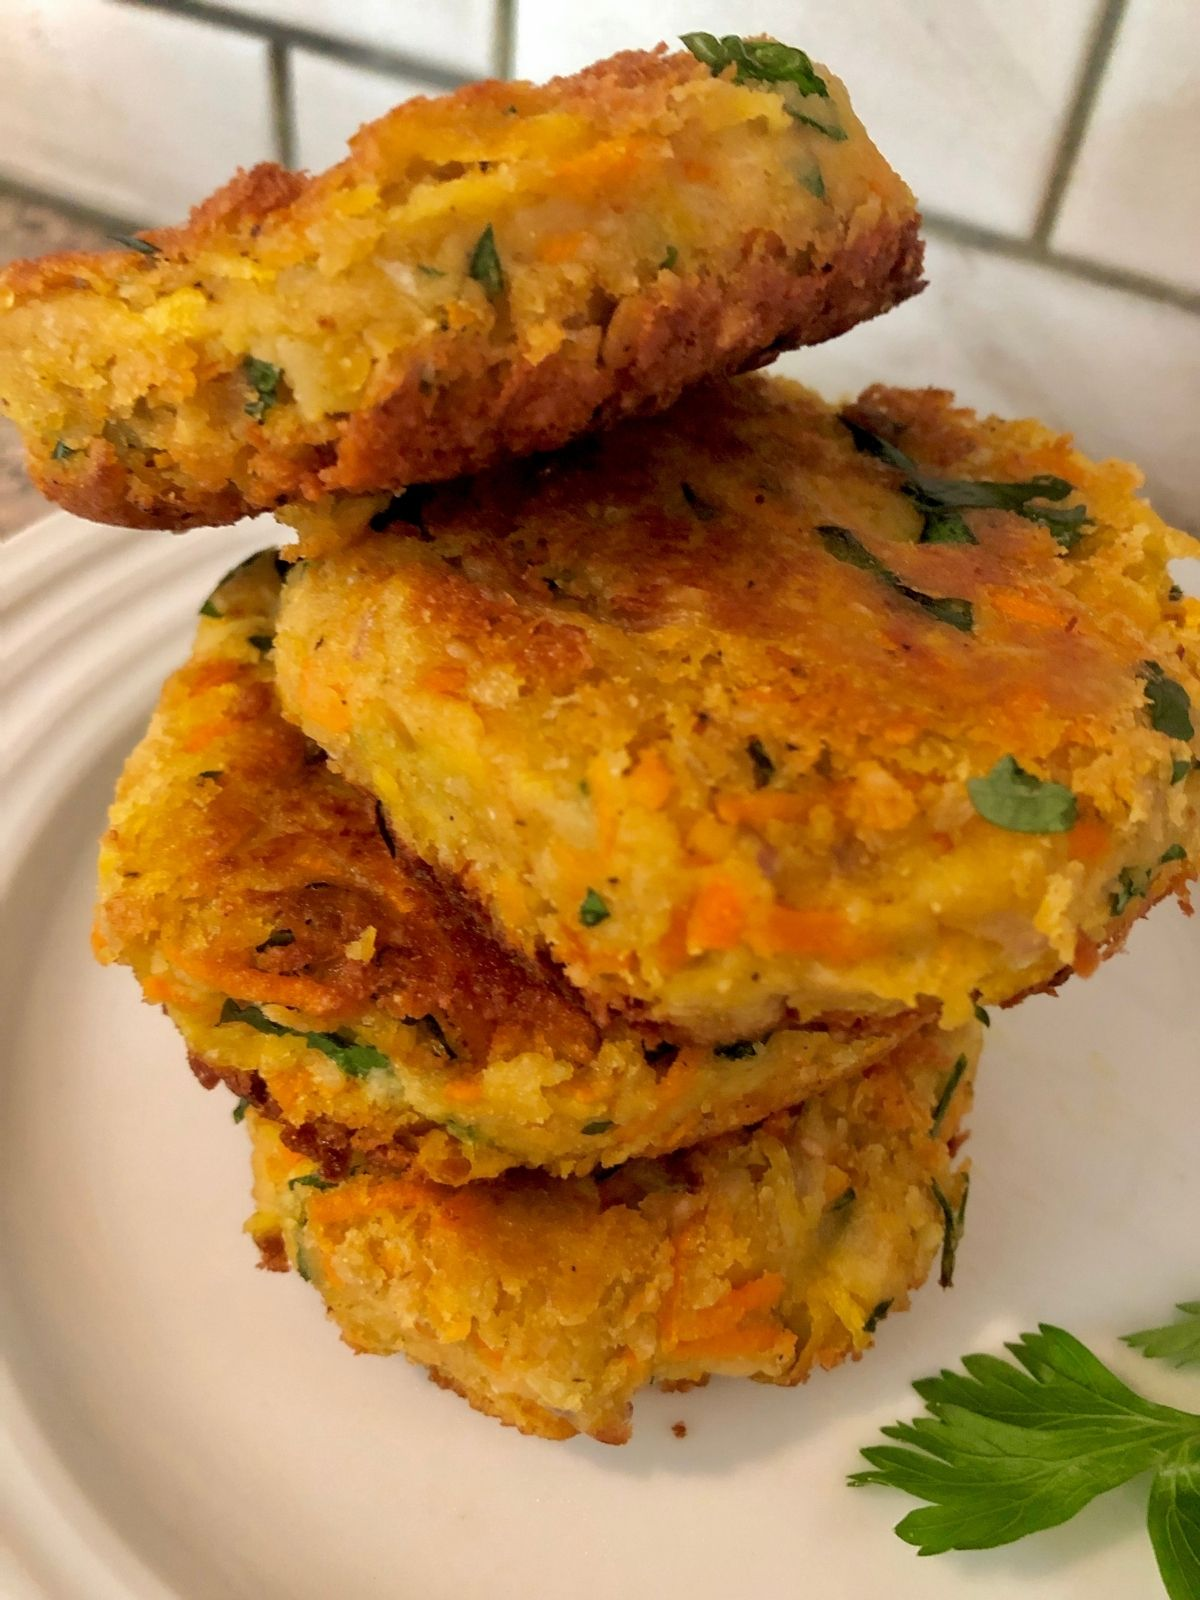 four chickpea patties piled high on a white plate garnished with fresh parsley, white subway tile in background